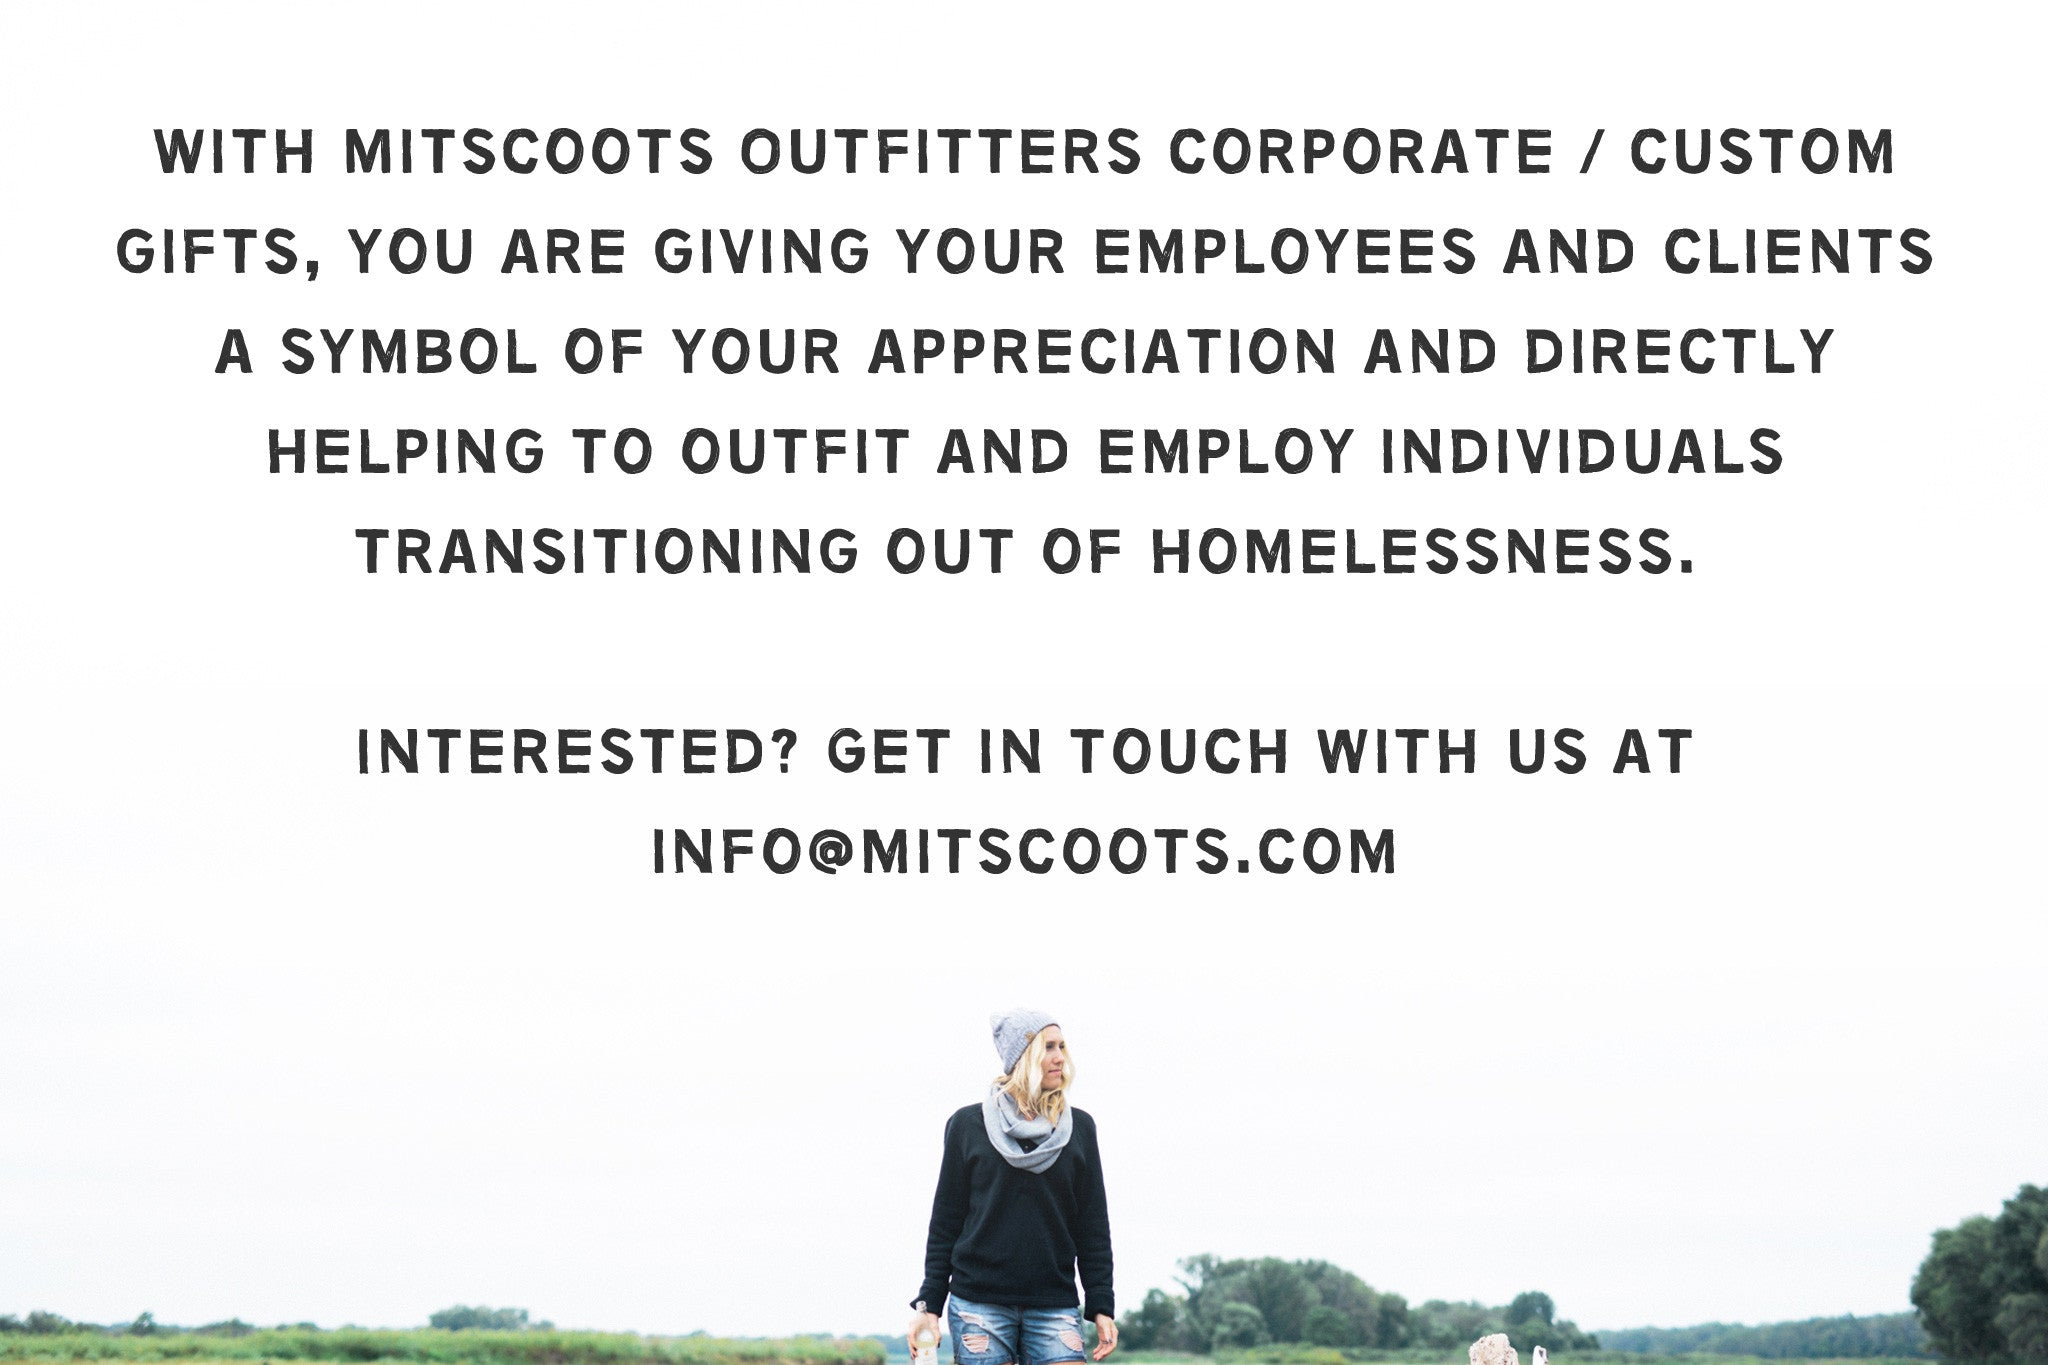 Custom and Corporate Gifts Mitscoots Outfitters